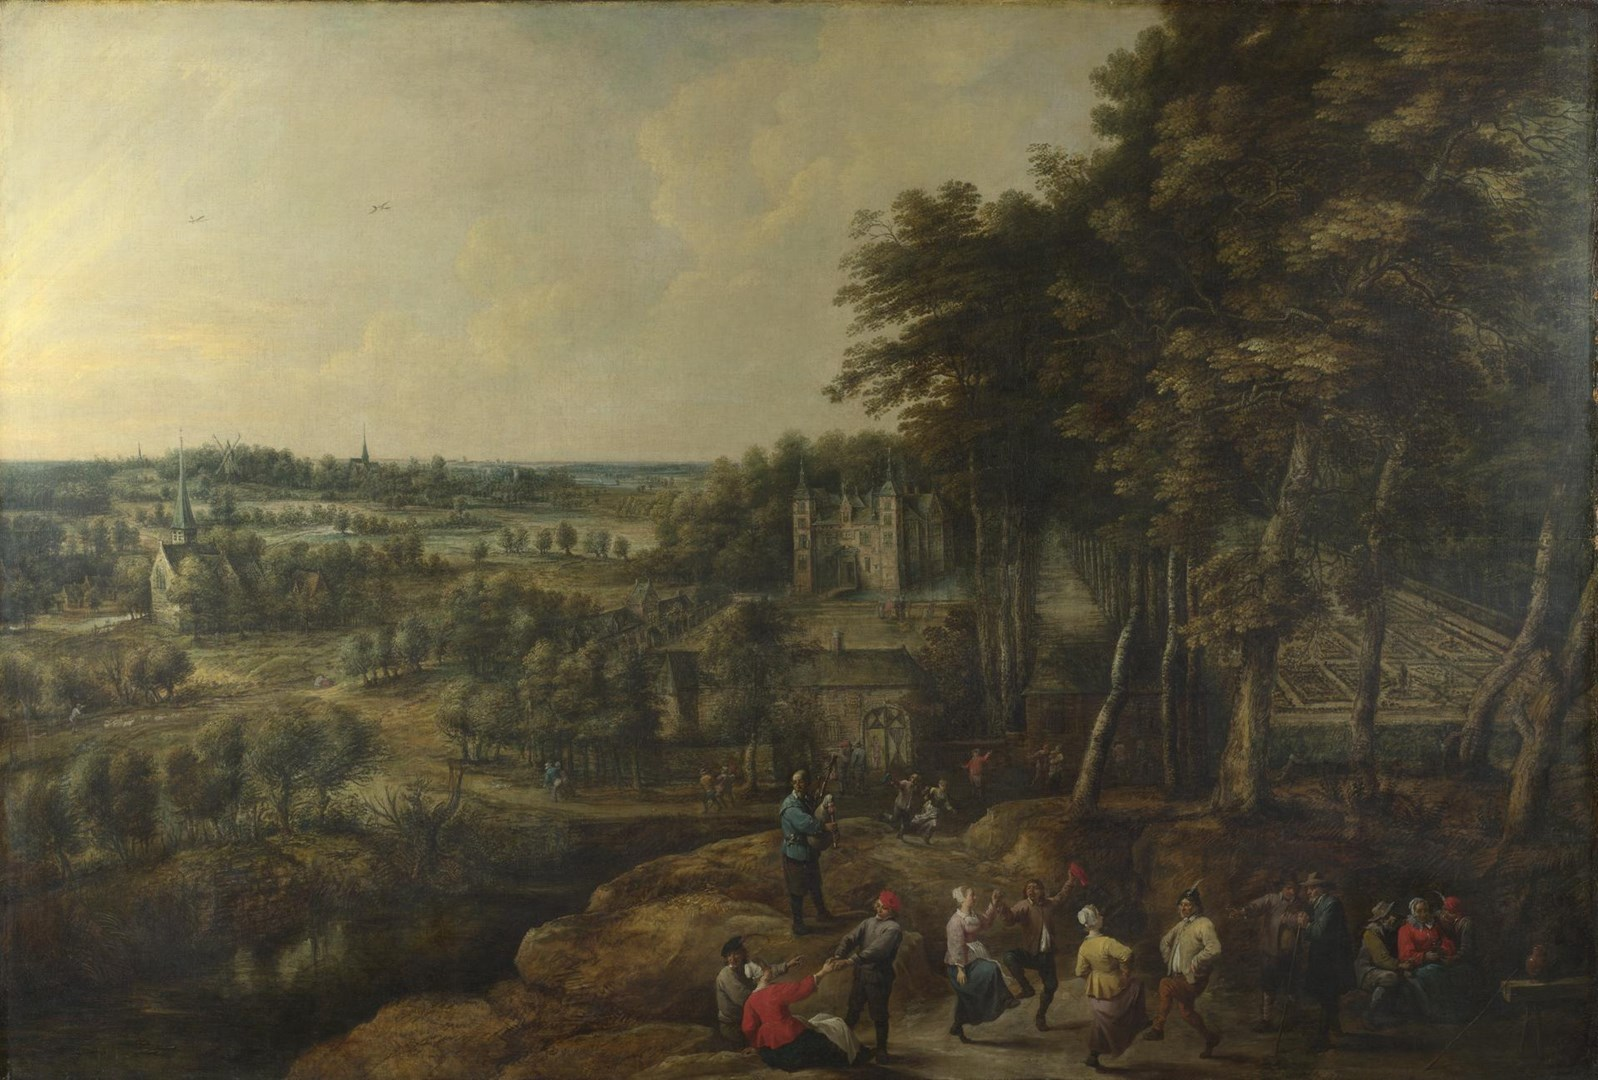 Peasants merry-making before a Country House by Lucas van Uden and David Teniers the Younger